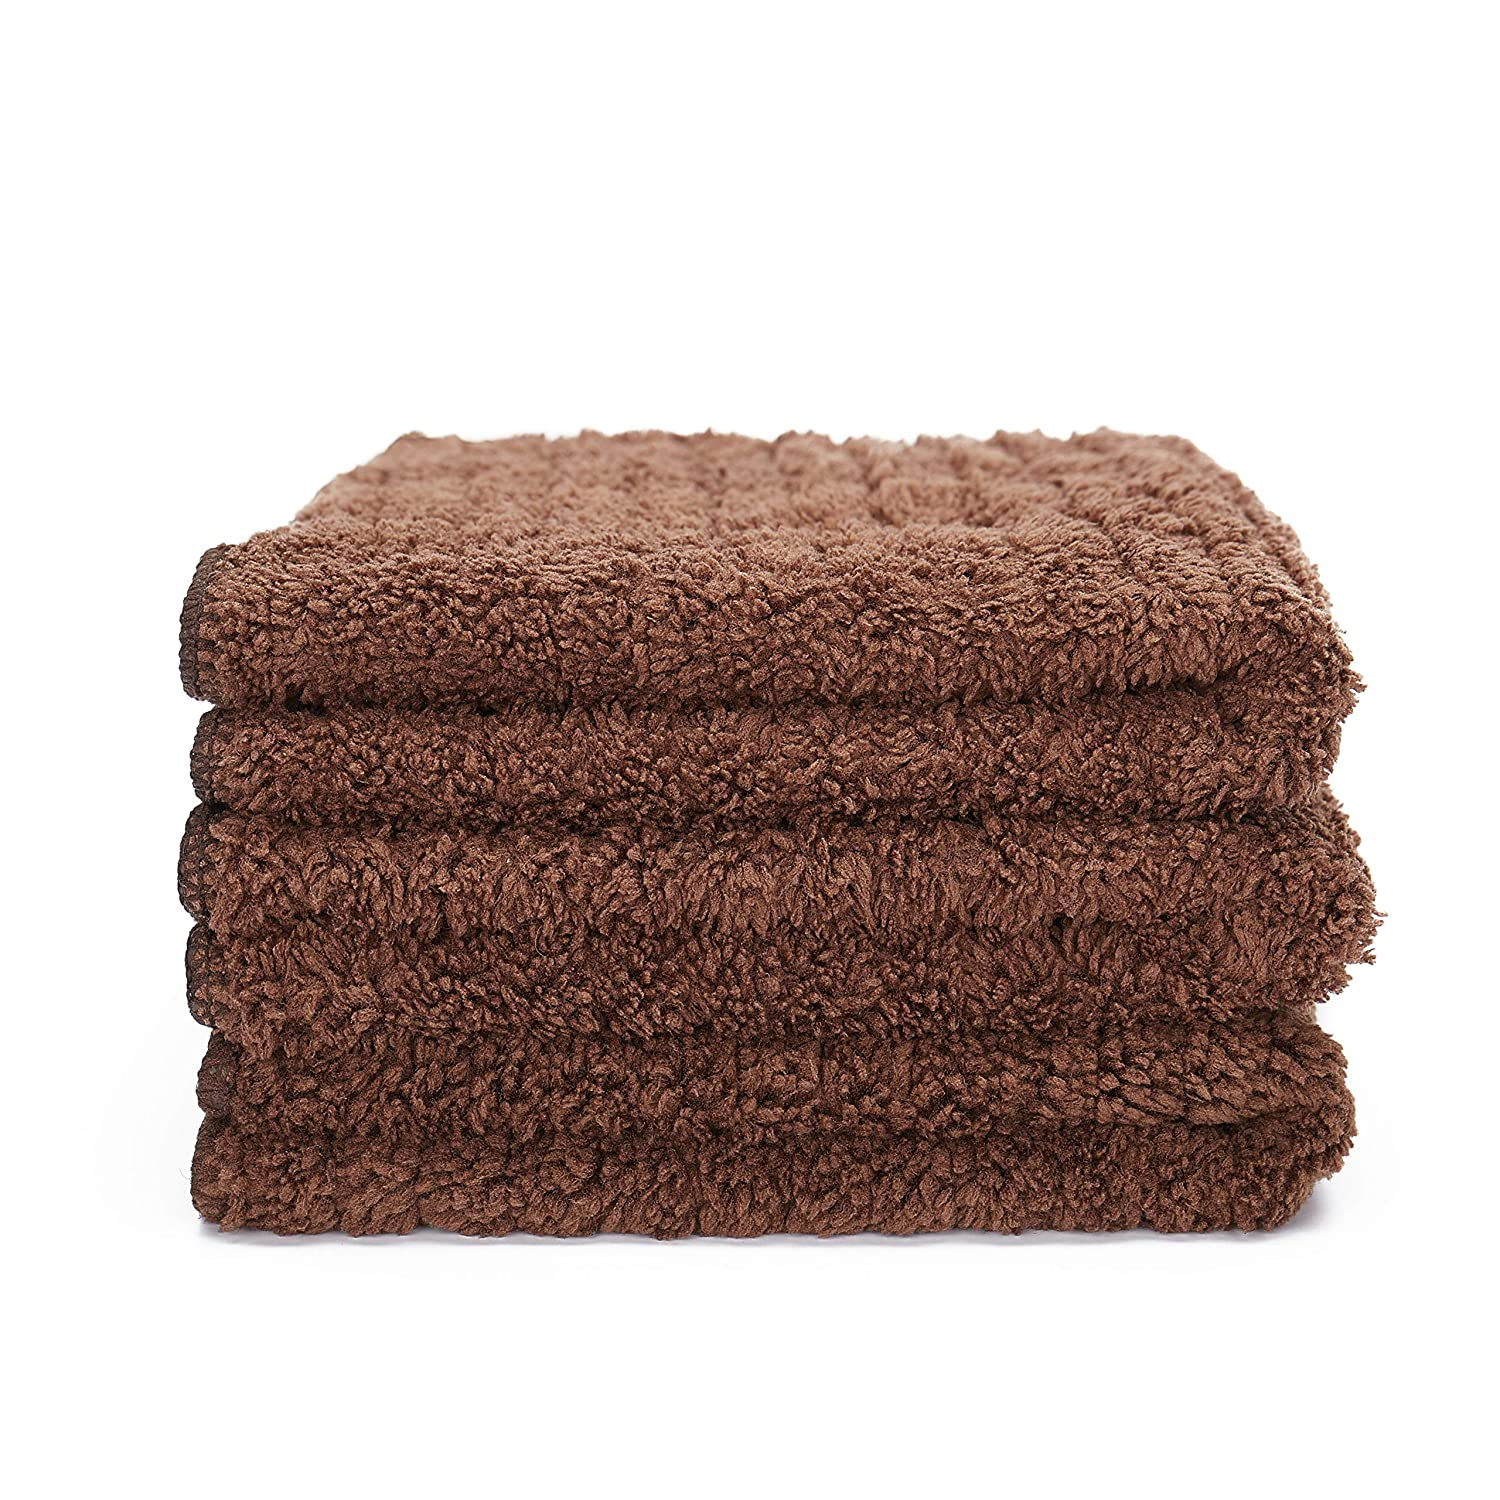 Great Water Absorbent Cleaning Towels for Cooking in Kitchen and Household Cleaning Tea Towels Dust Cloth - - Soft Microfiber Kitchen Towels Dish Cloth 3 Pack, 12 x 12 inch